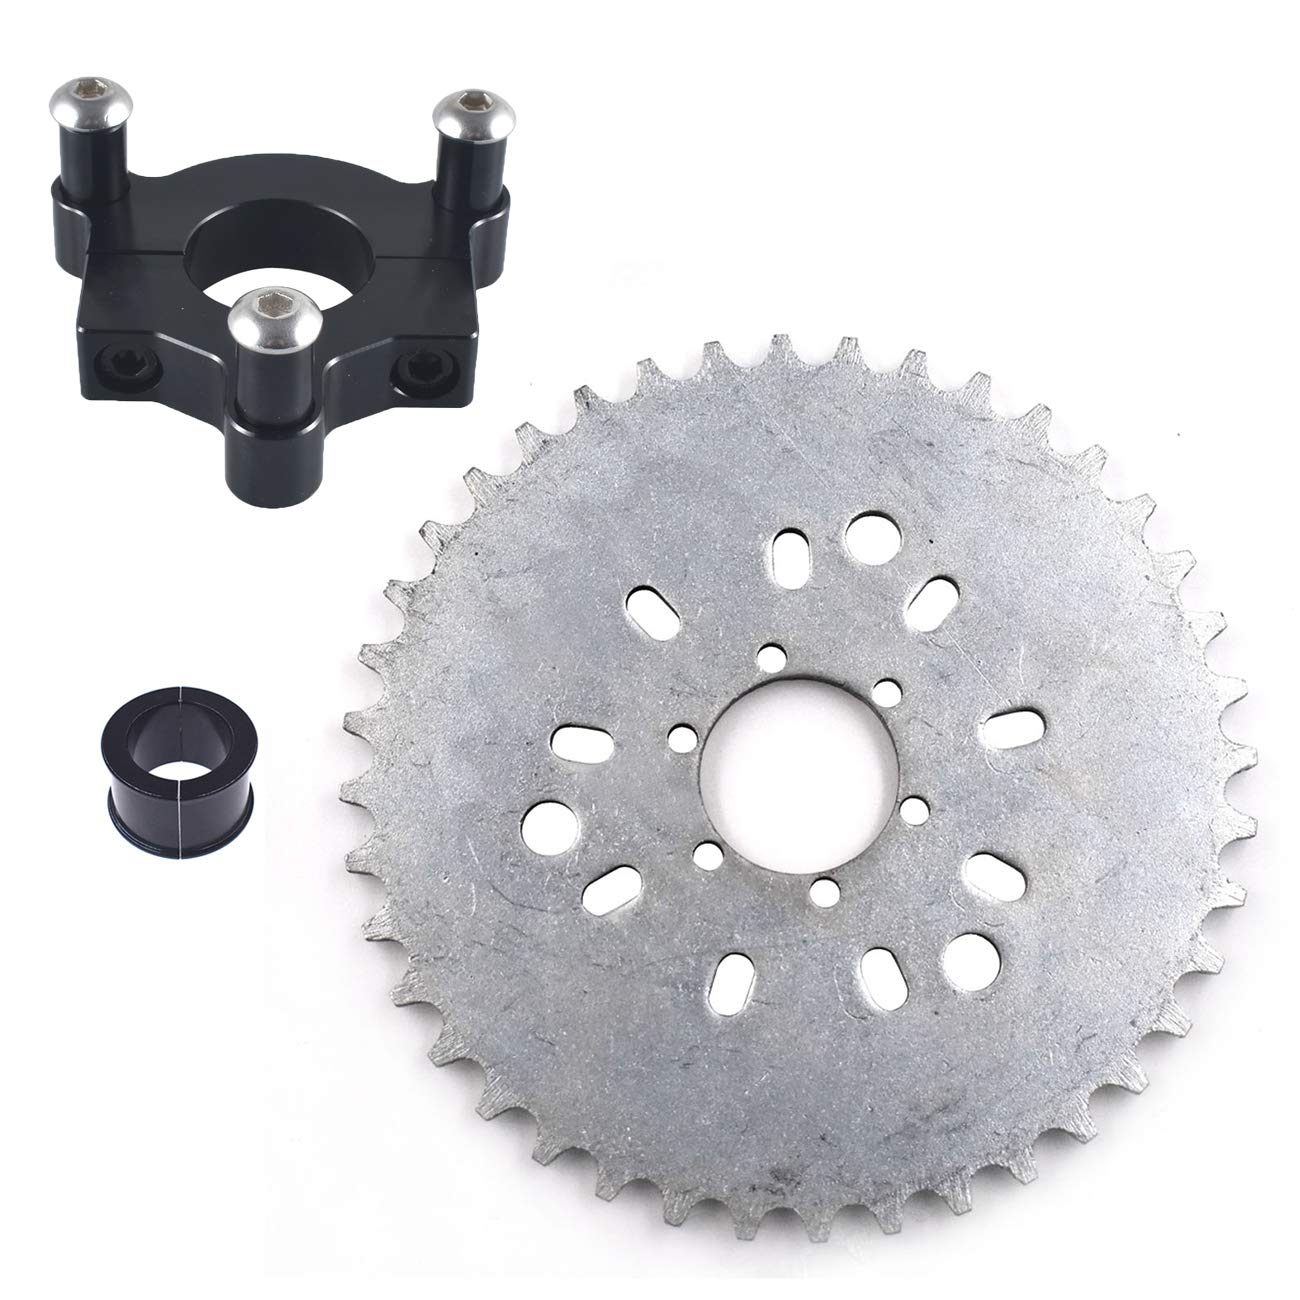 1.5 38mm CNC Adapter 44T Sprocket Fits 80cc Motorized Bicycle Supermotorparts 1 25mm